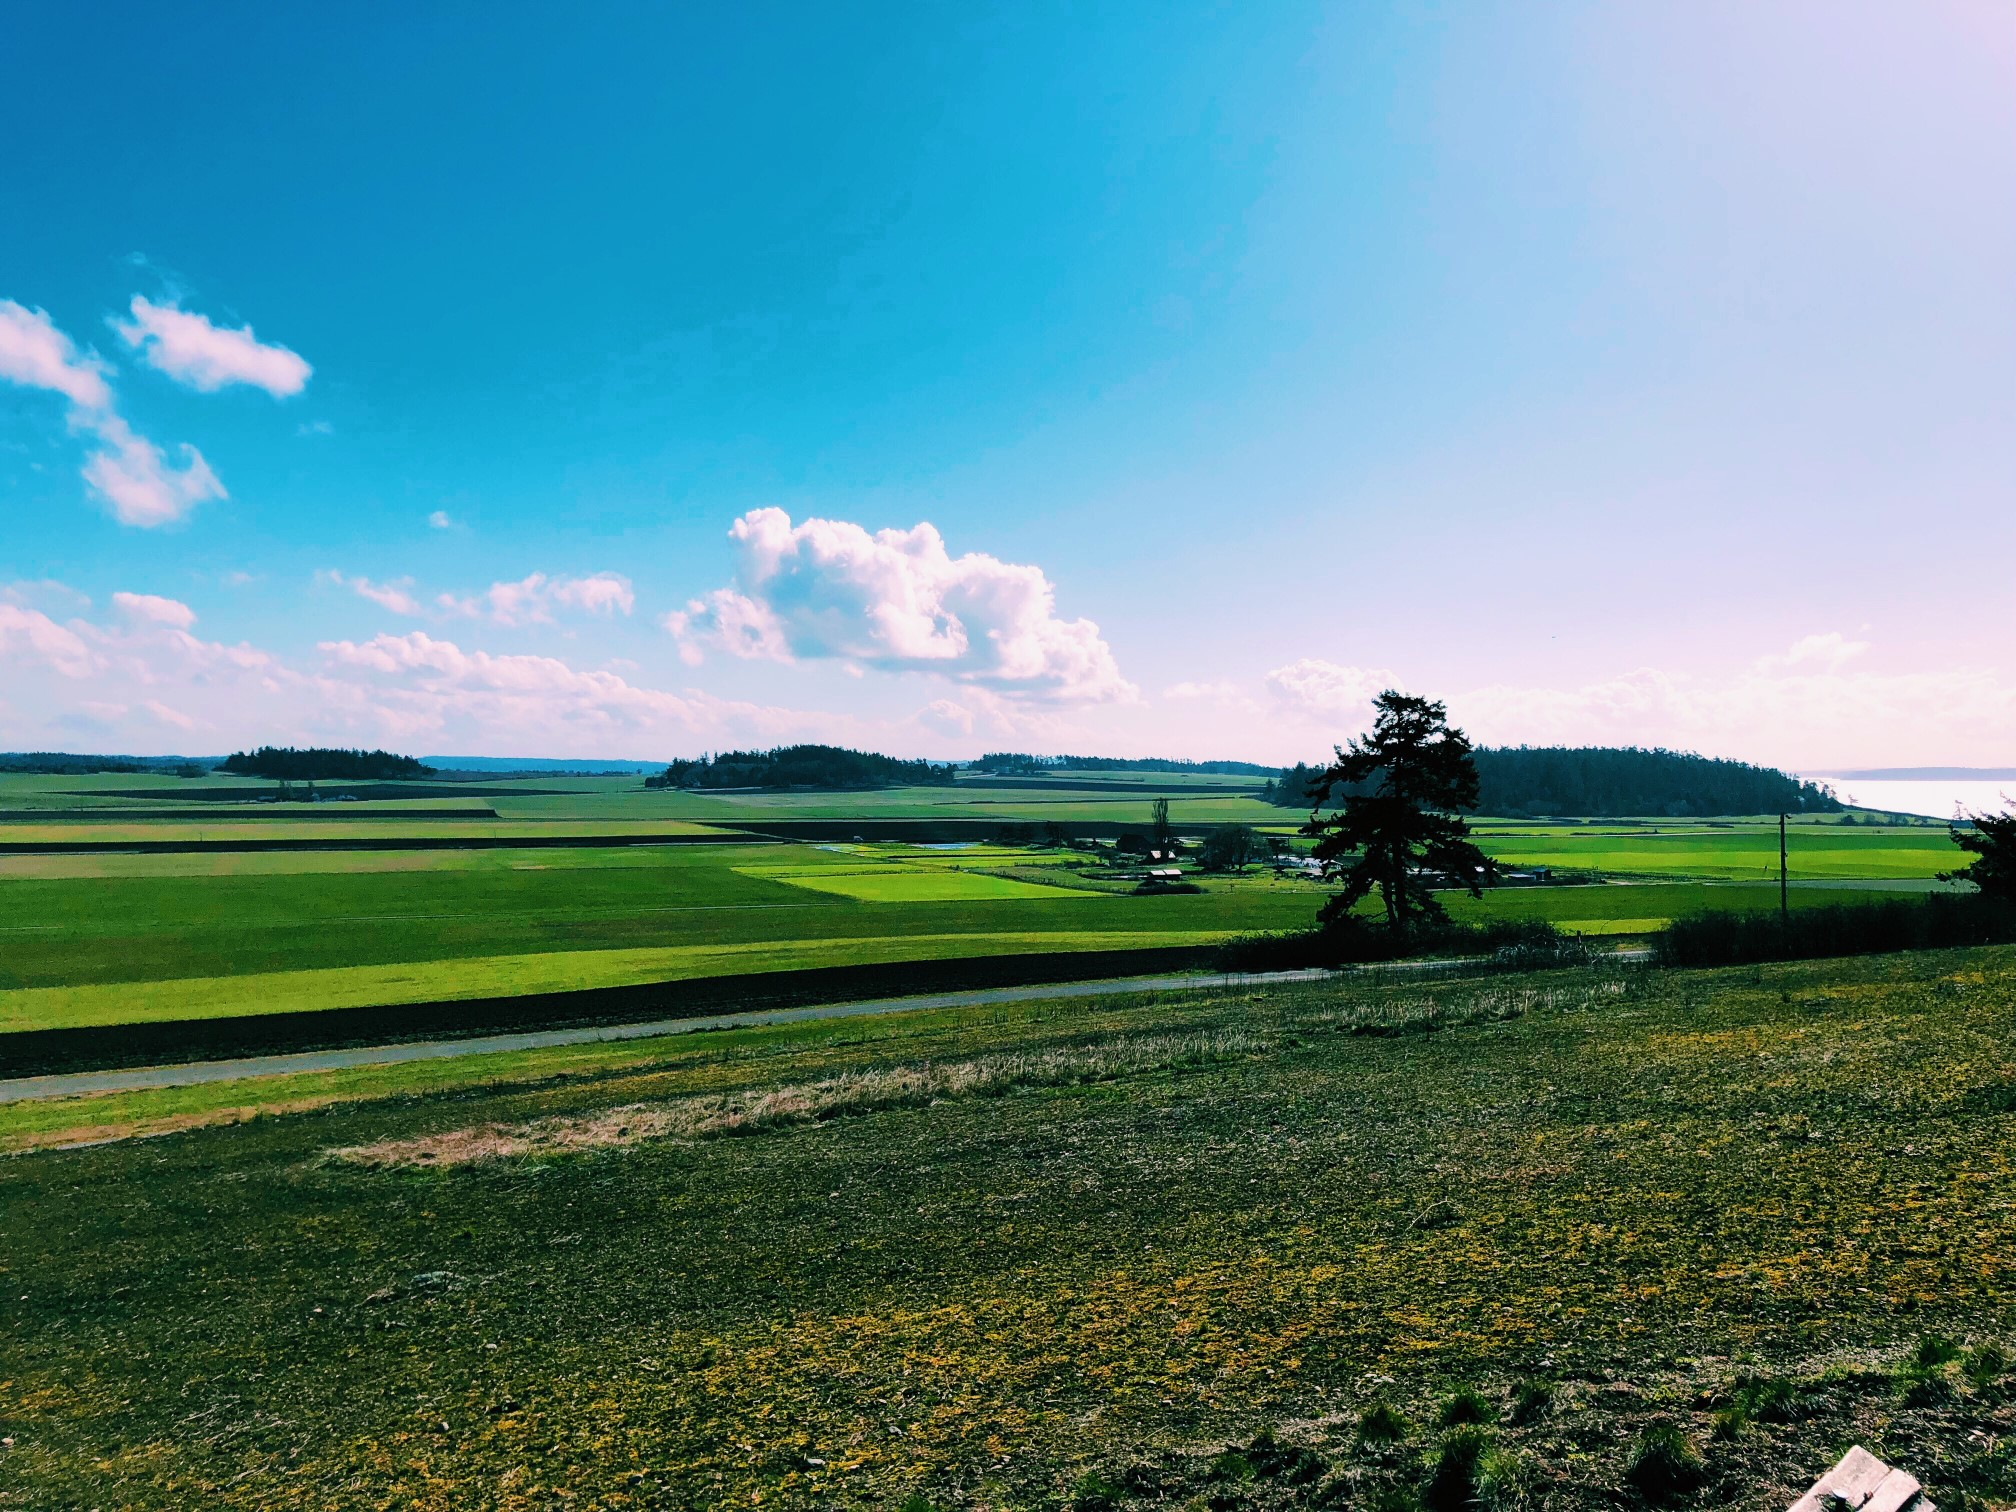 Ebey's Farmland, Windermere, Coupeville